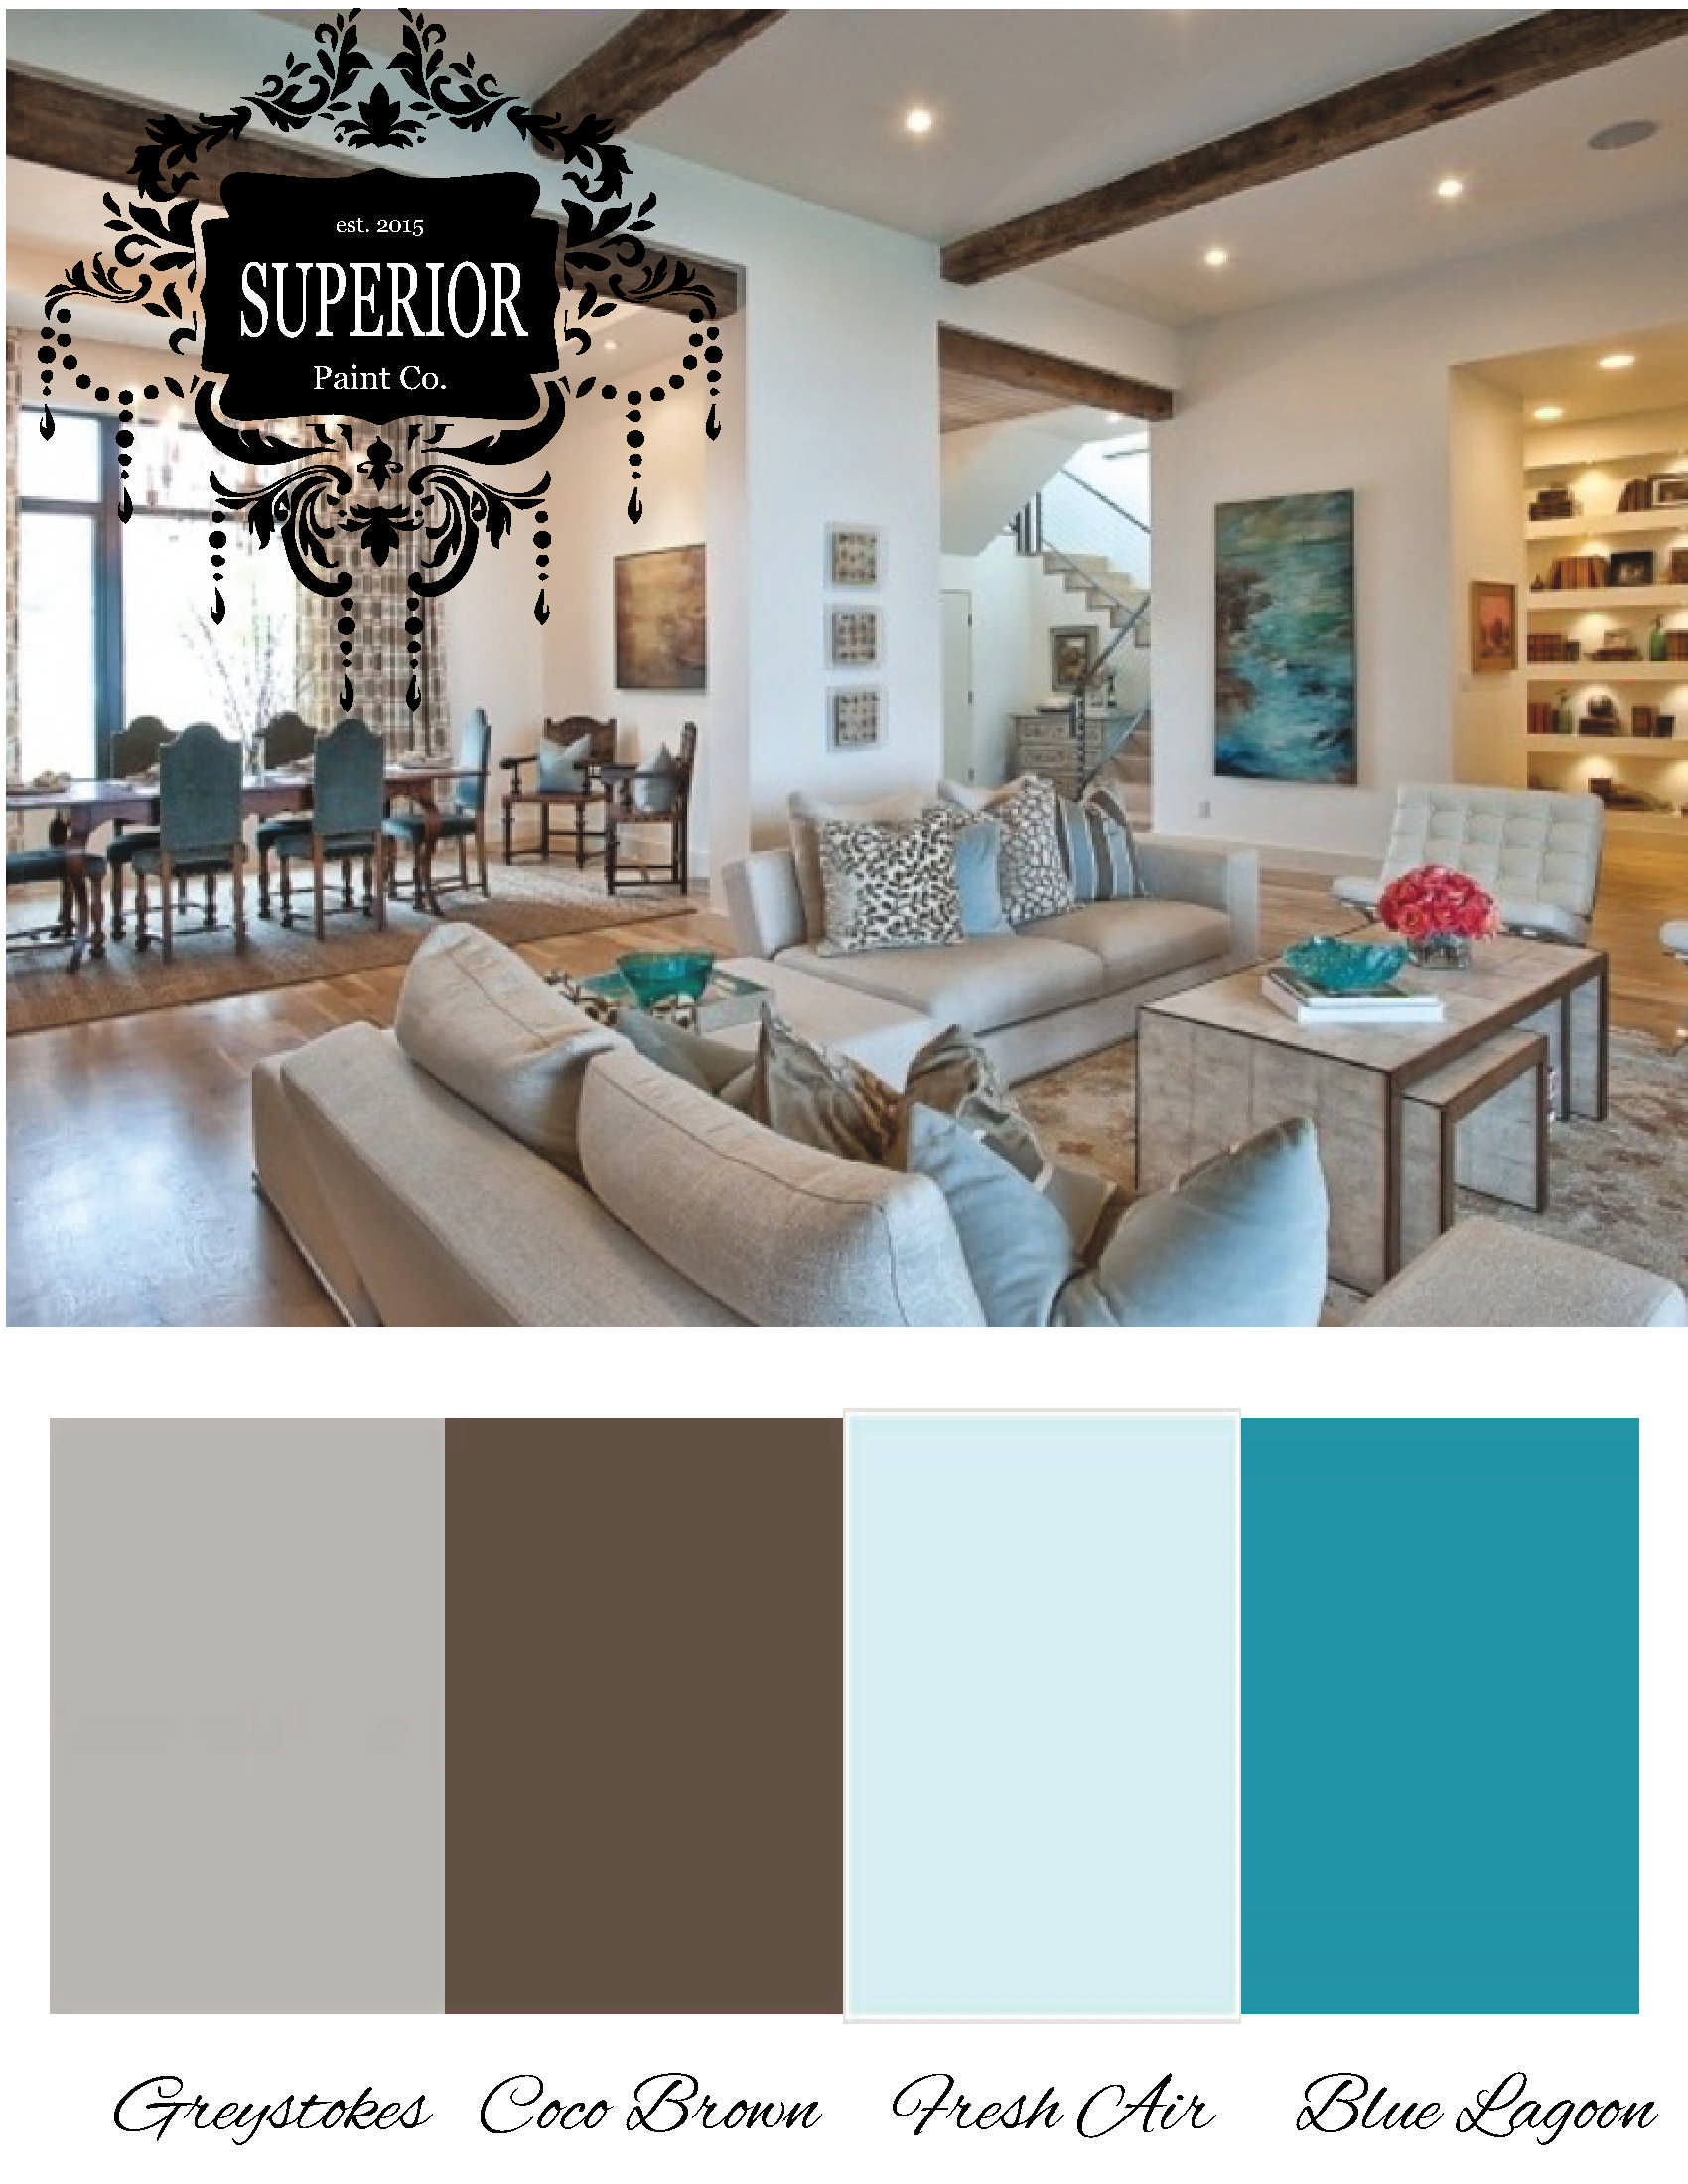 For My Living Room Living Room Color Schemes Living Room Color Room Color Schemes Living room decor colors